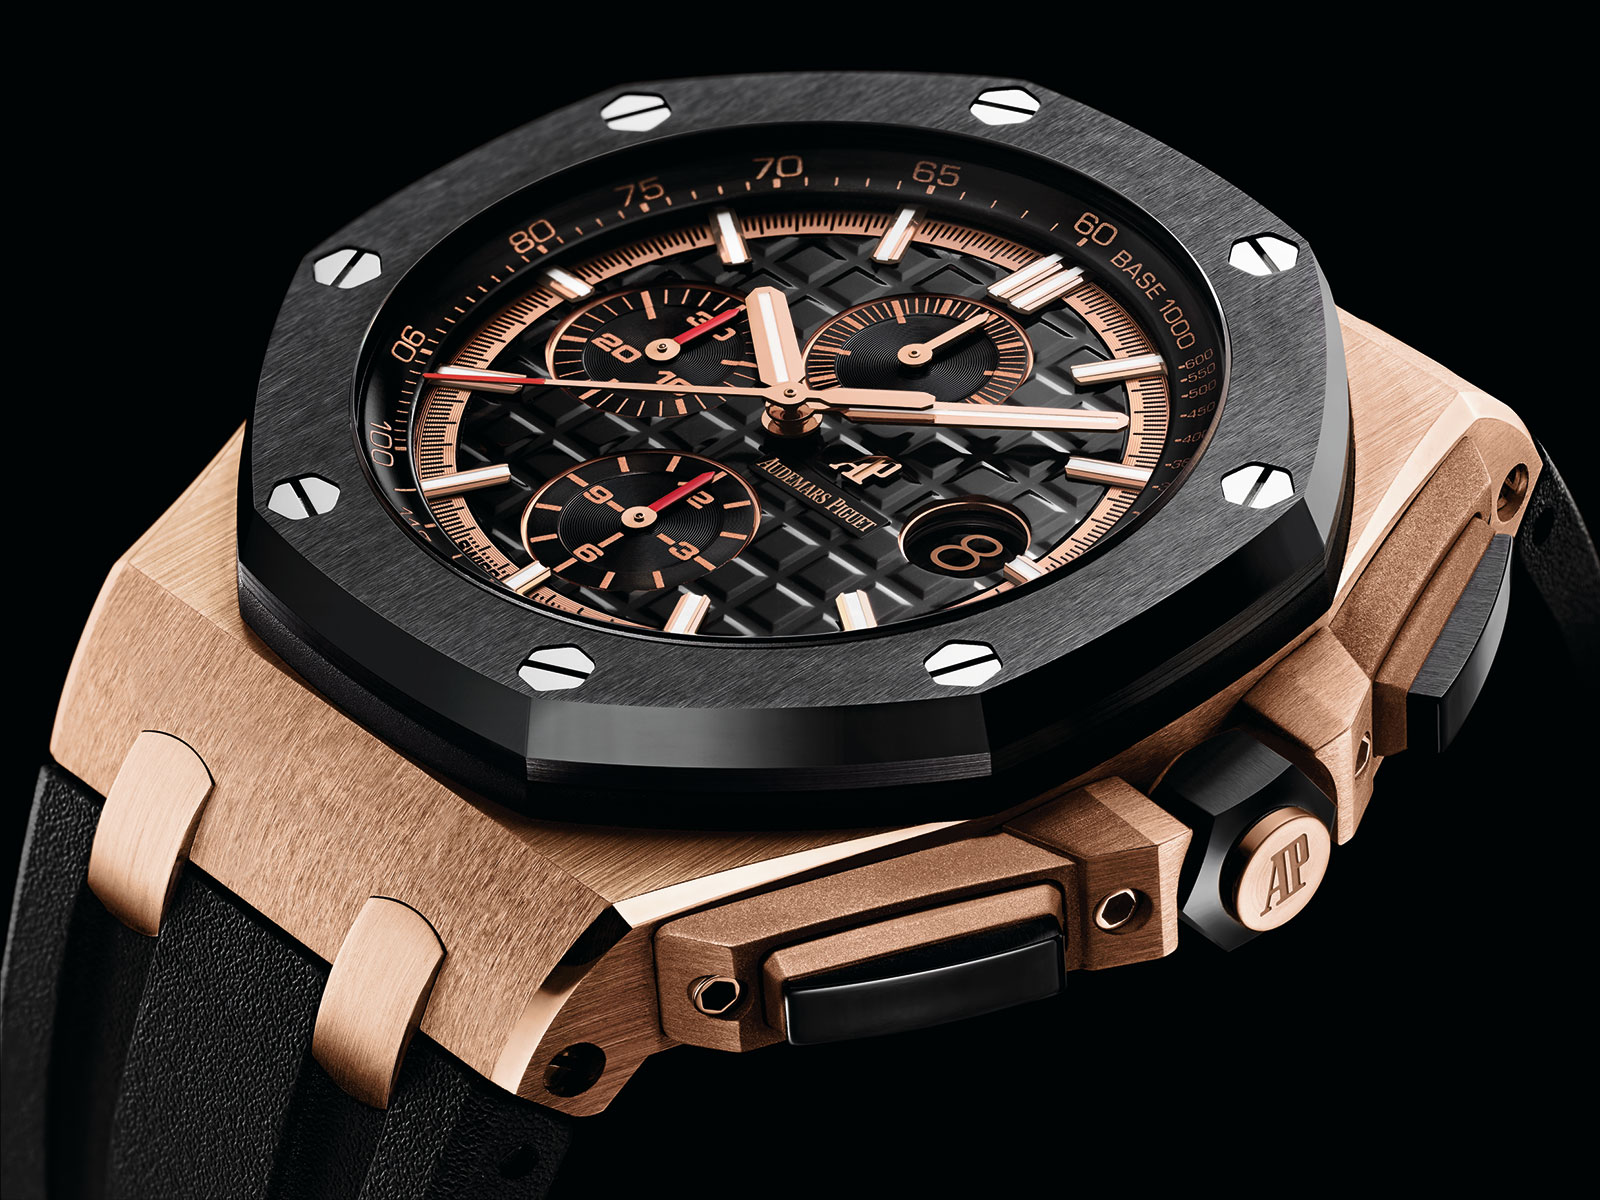 Audemars-Piguet-Royal-Oak-Offshore-Sihh-2017-4.jpg